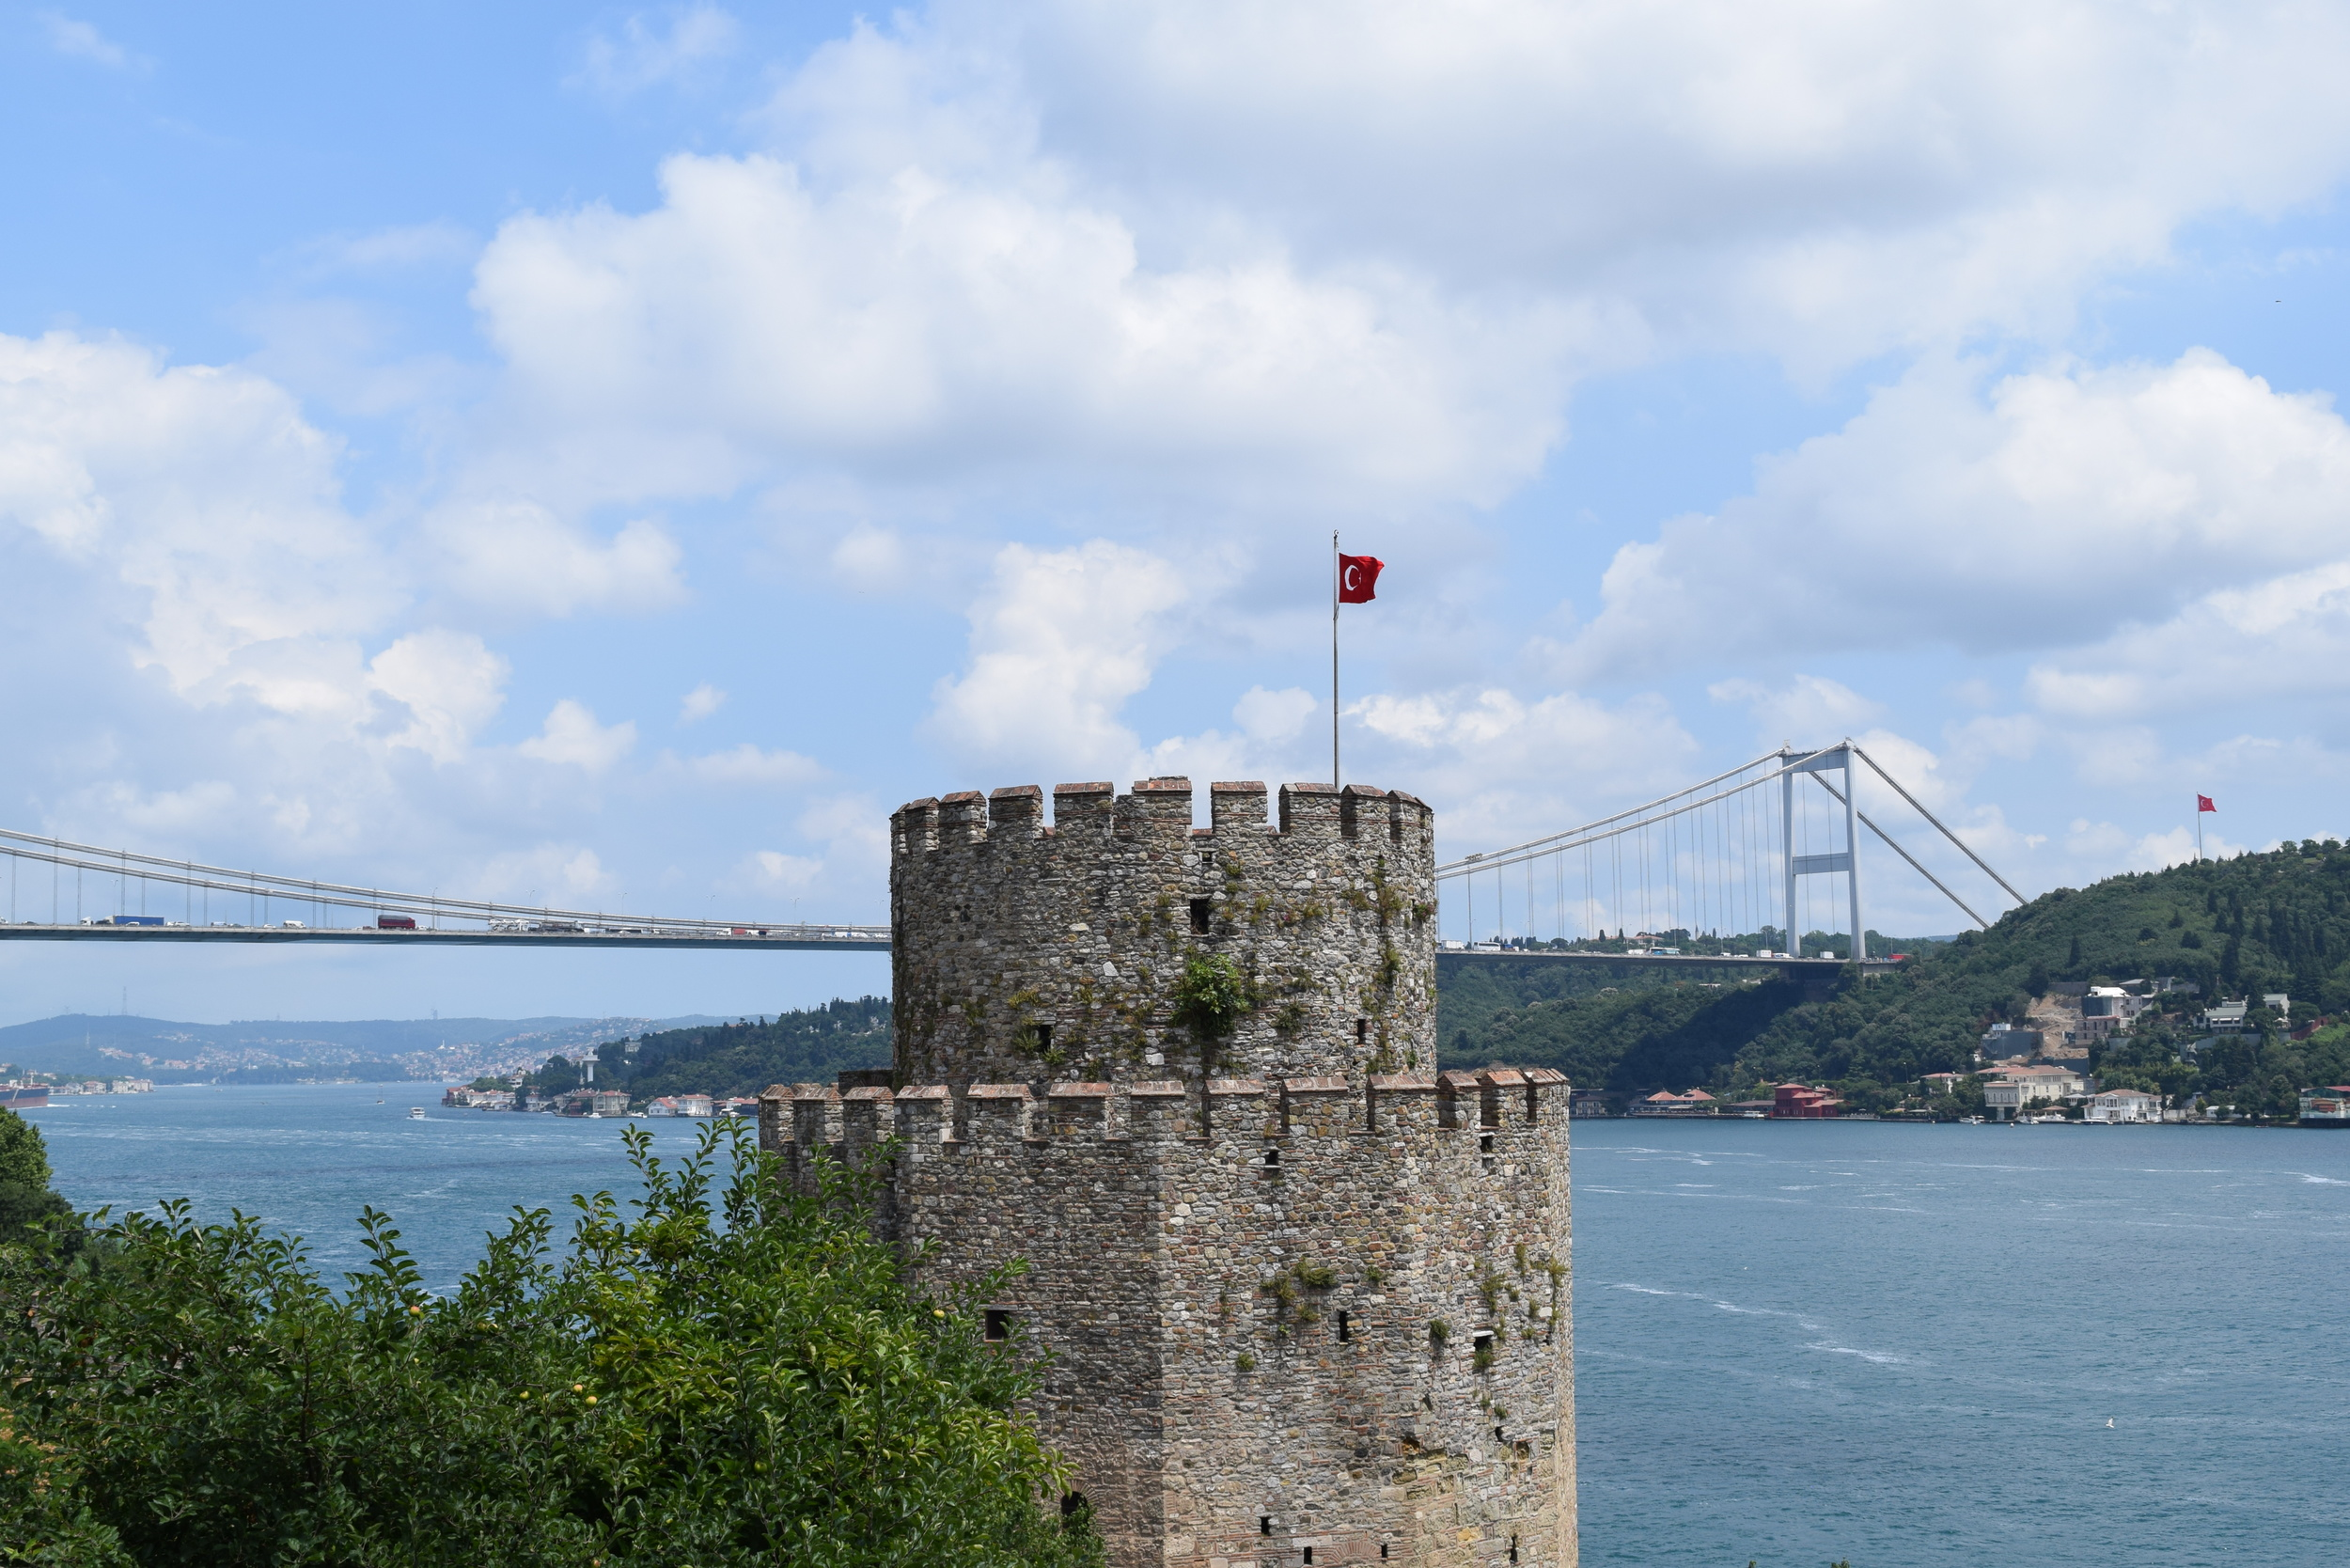 A view across the Bosphorus